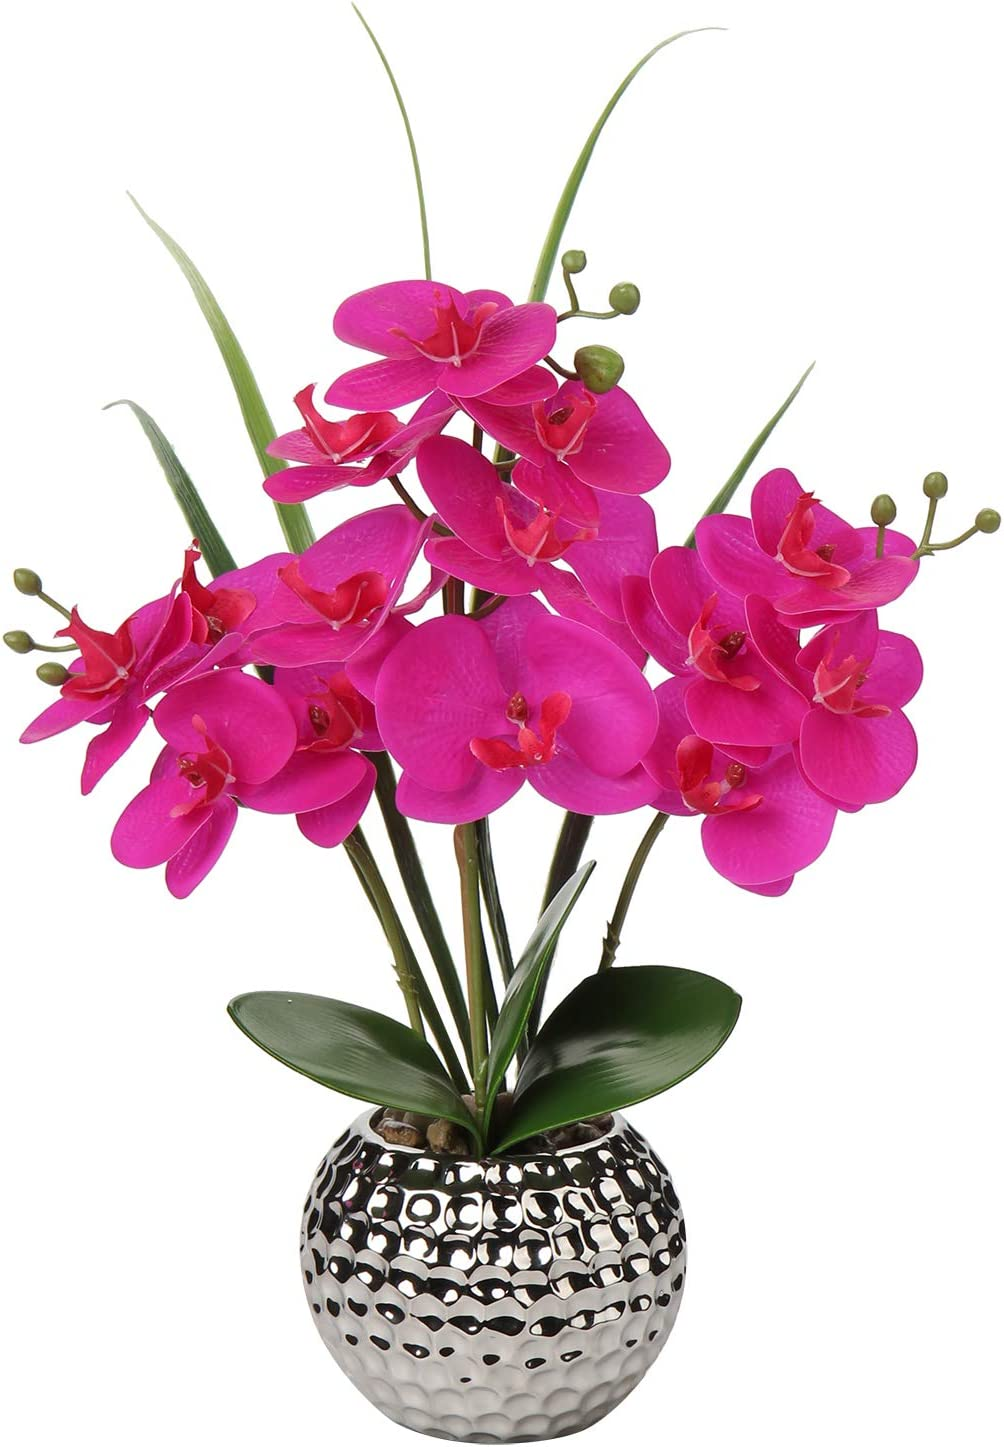 Artificial Orchids 16'' Faux Orchid Plant Phalaenopsis Artificial Flowers Silk Orchid Orquidea Arrangements Ceramics Pot Real Touch Fake Orchid Flowers for Home Office Table Wedding Centerpiece Decor